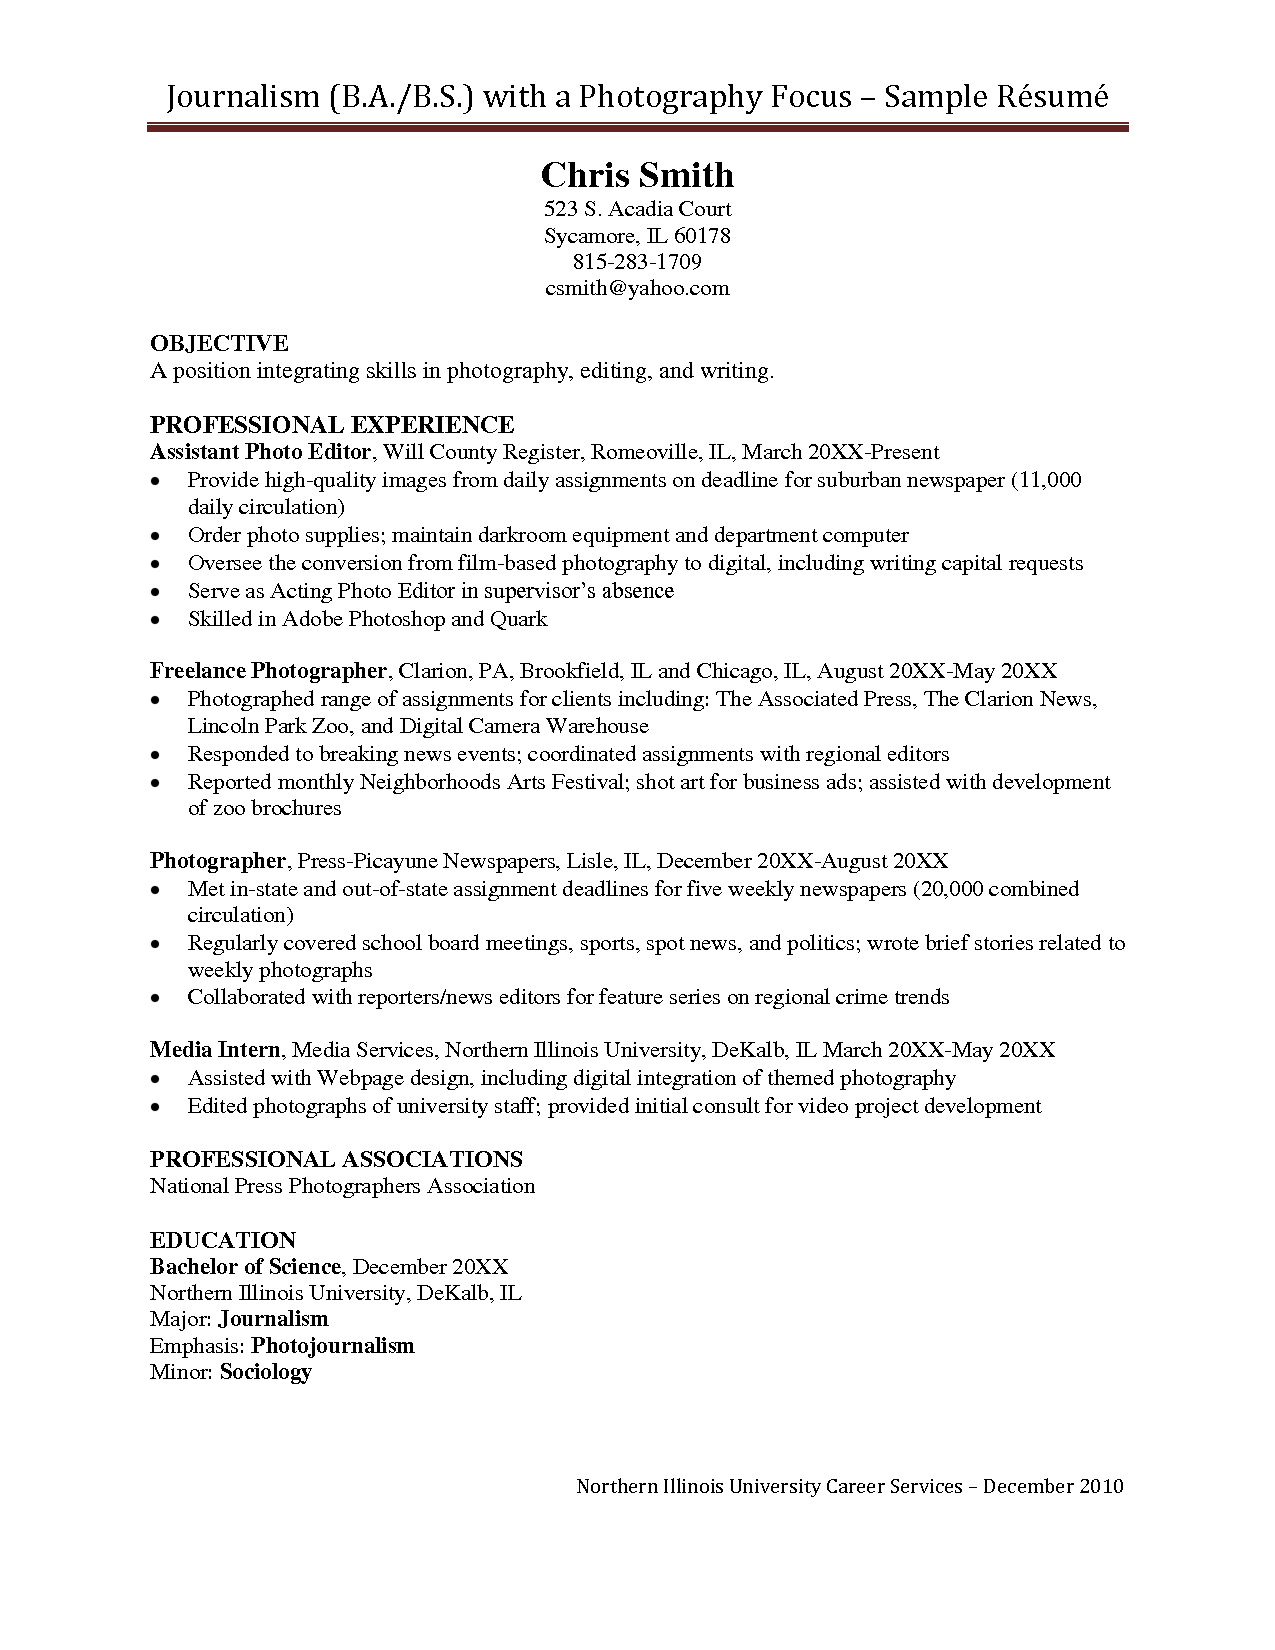 Scope Of Work Template Research Pinterest Template